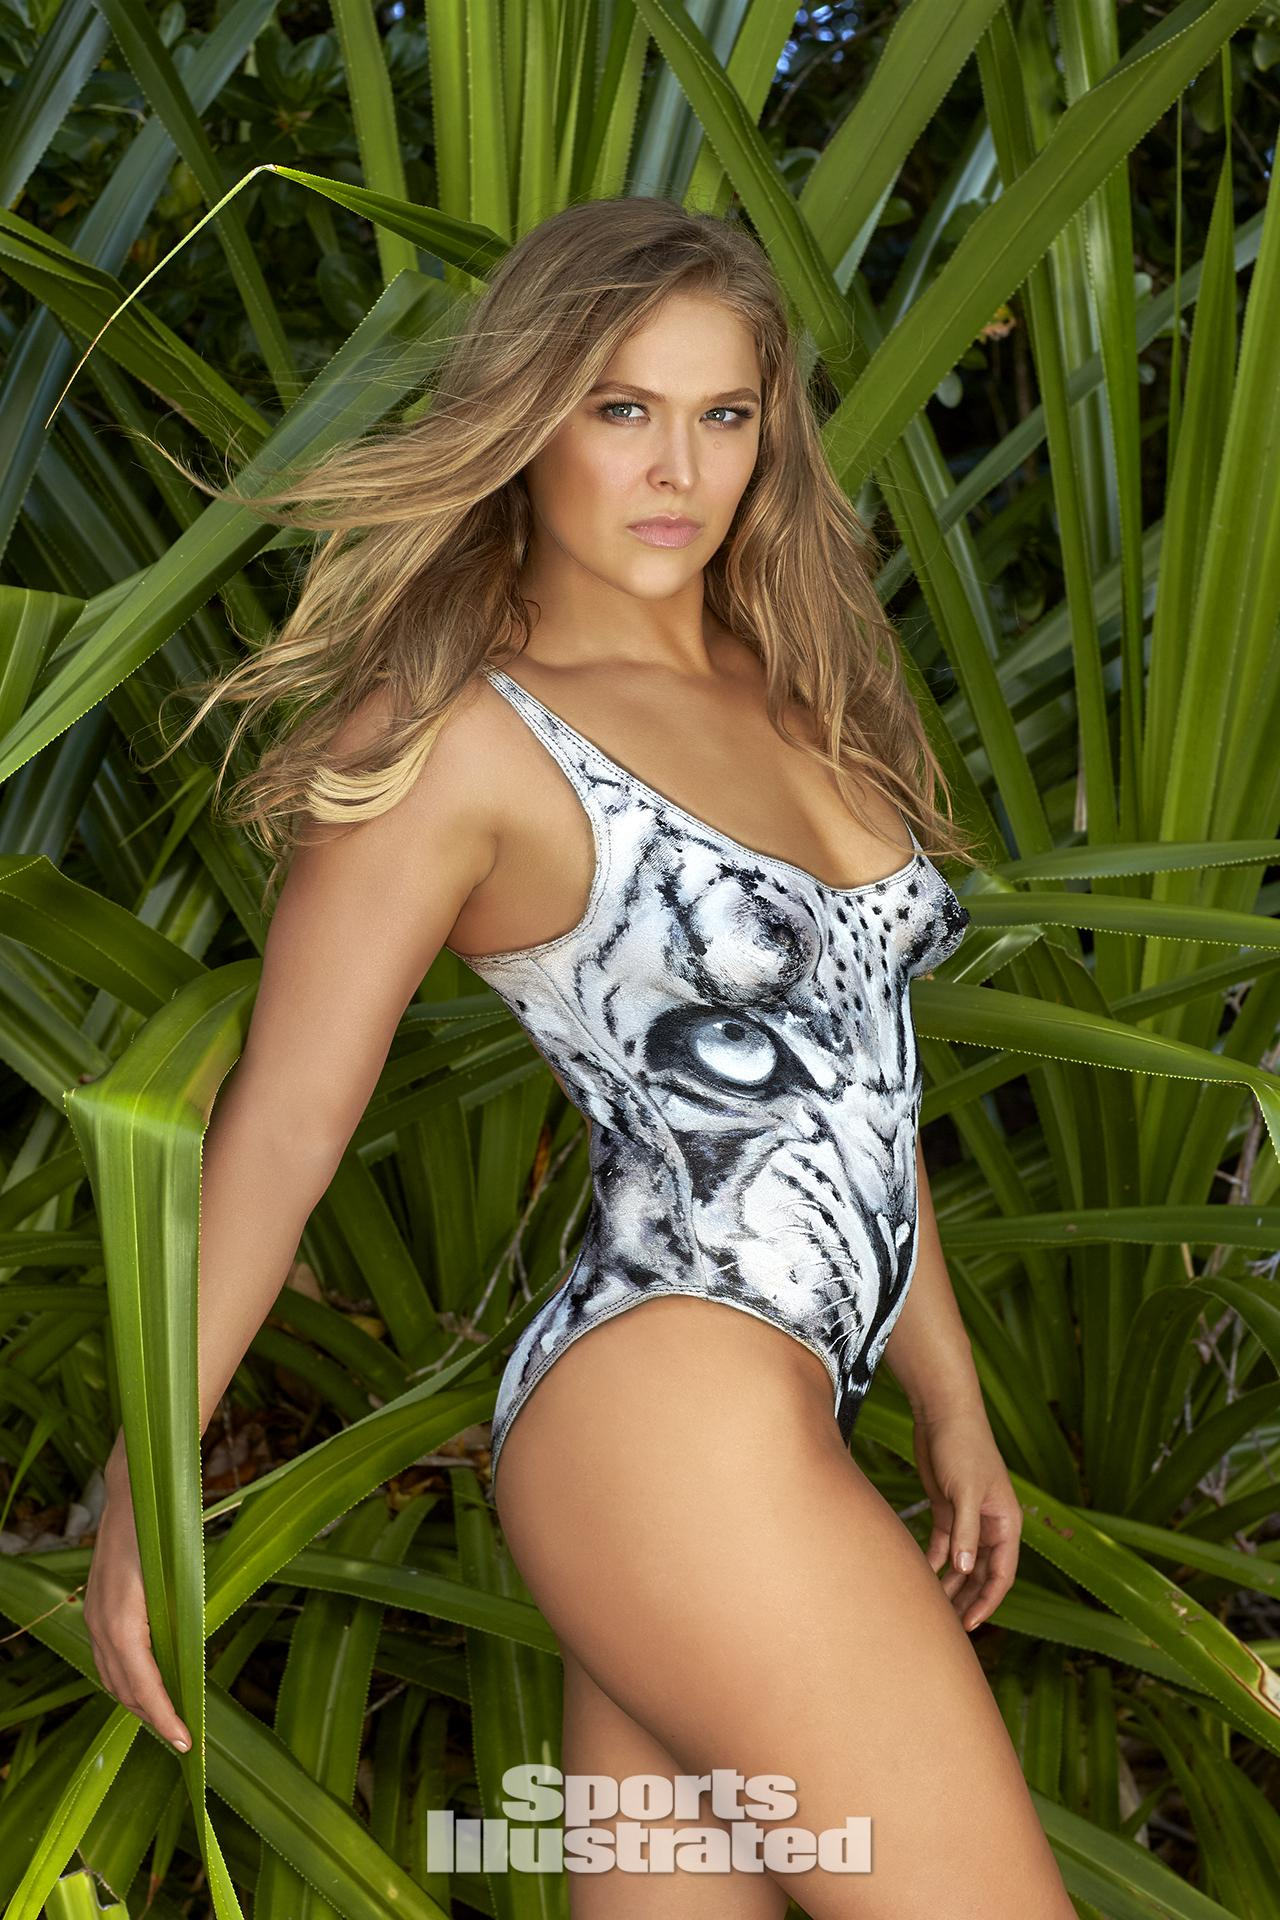 ronda-rousey-foi-capa-da-revista-sports-illustrated-so-de-bodypaint12